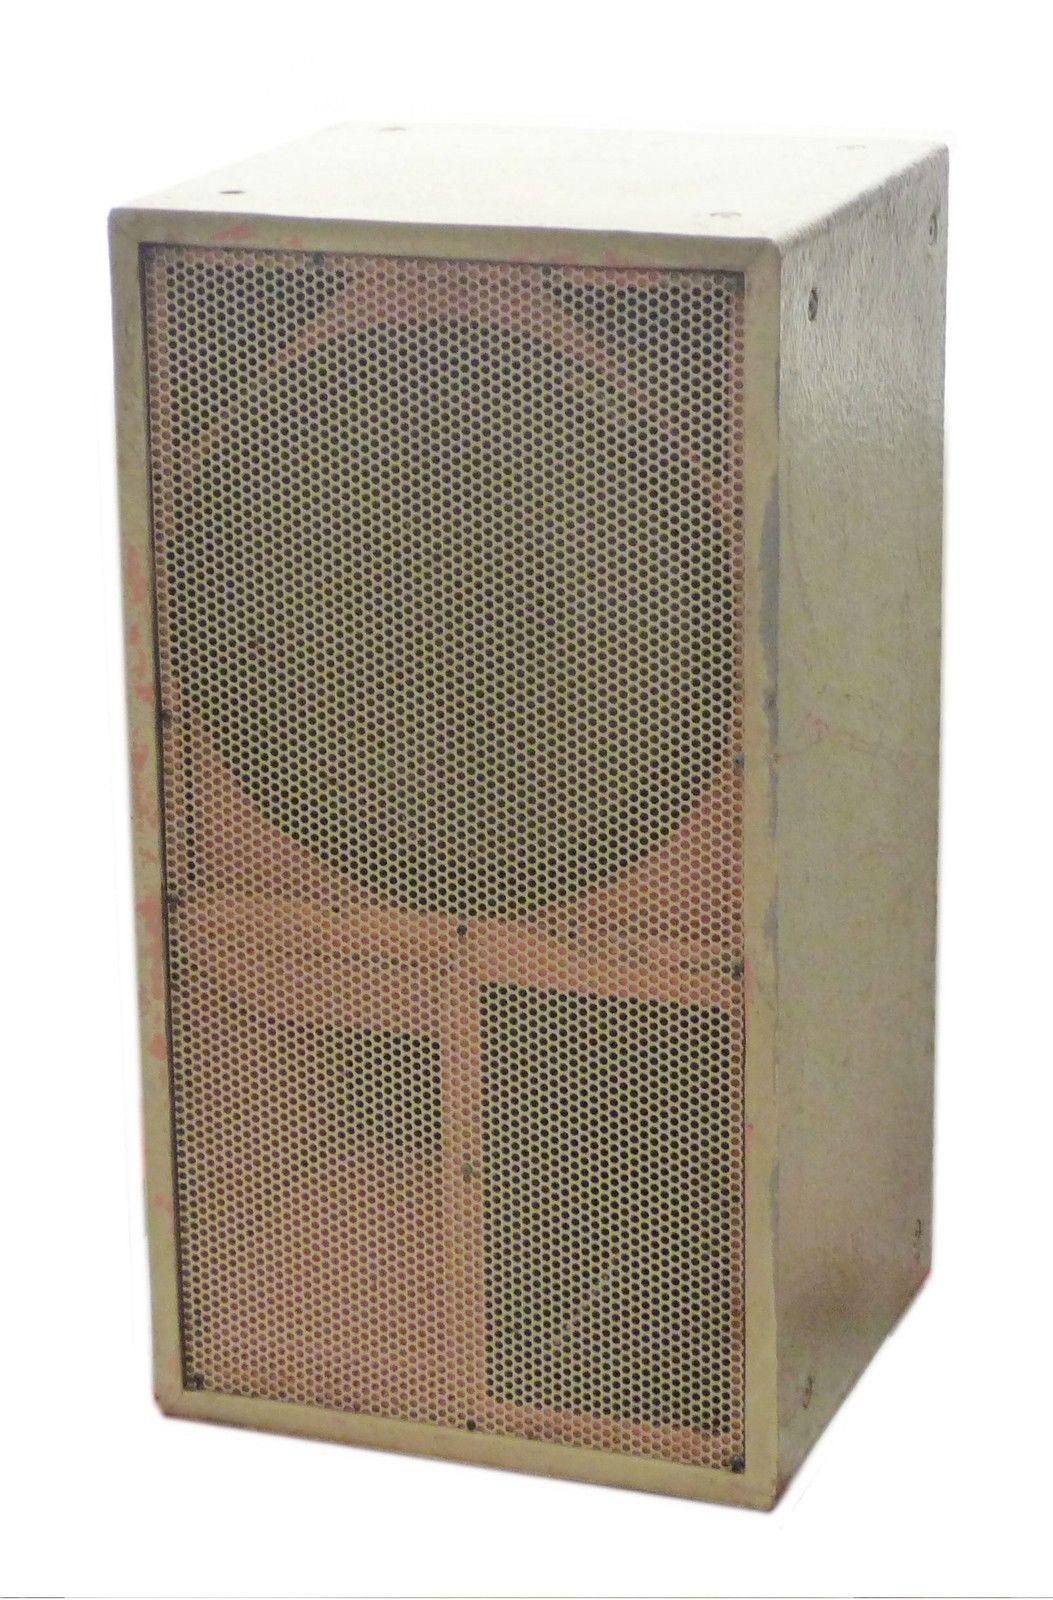 "EAW AS-300ISFX AS300 ISFX 3-WAY HORN-LOADED 15"" SUBWOOFER LOUDSPEAKER SPEAKER"